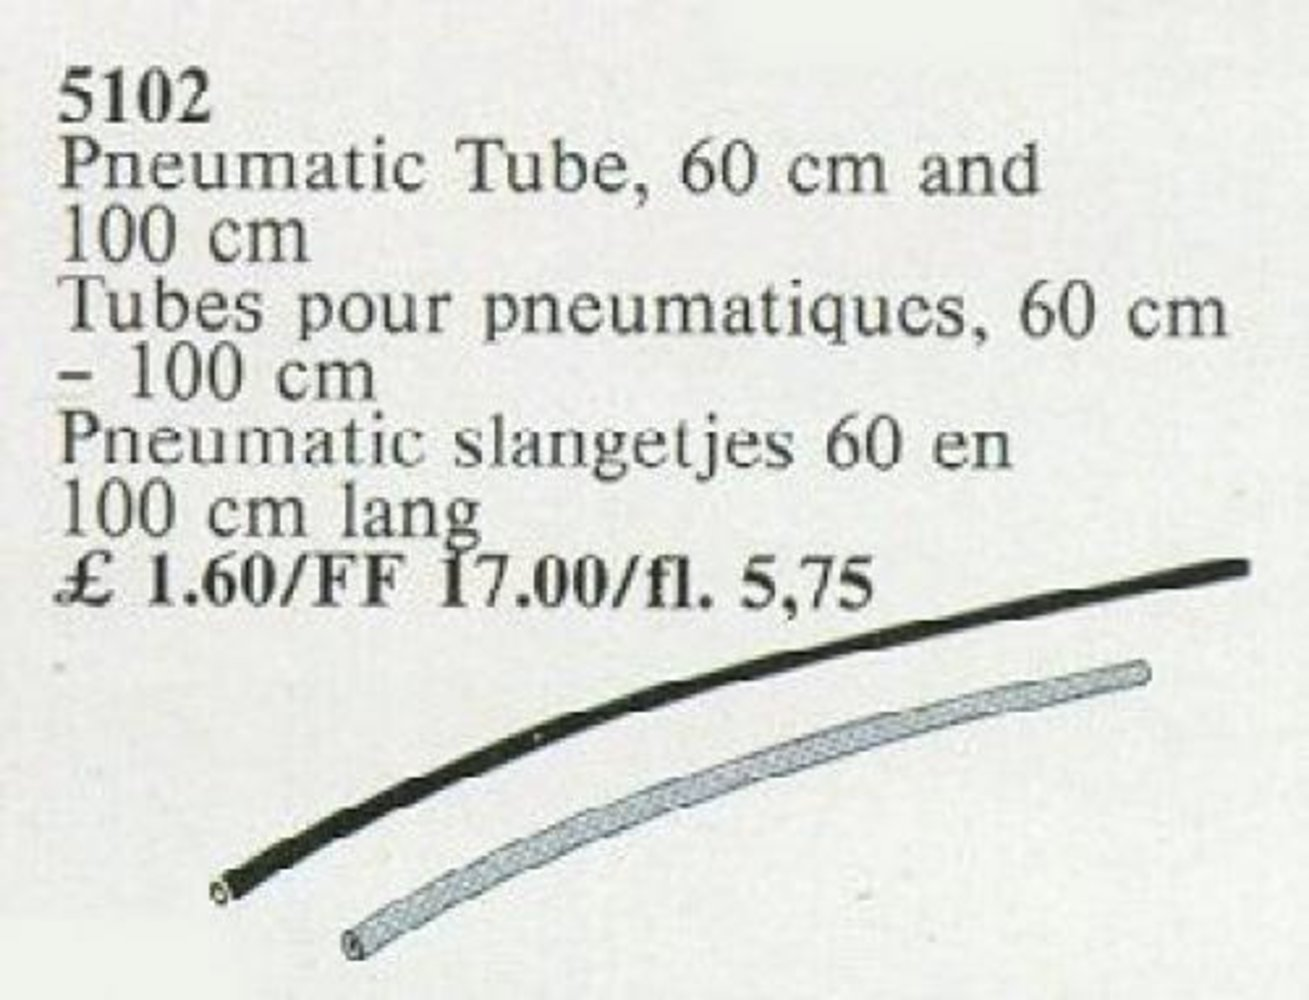 Pneumatic Tube, 60 cm and 100 cm